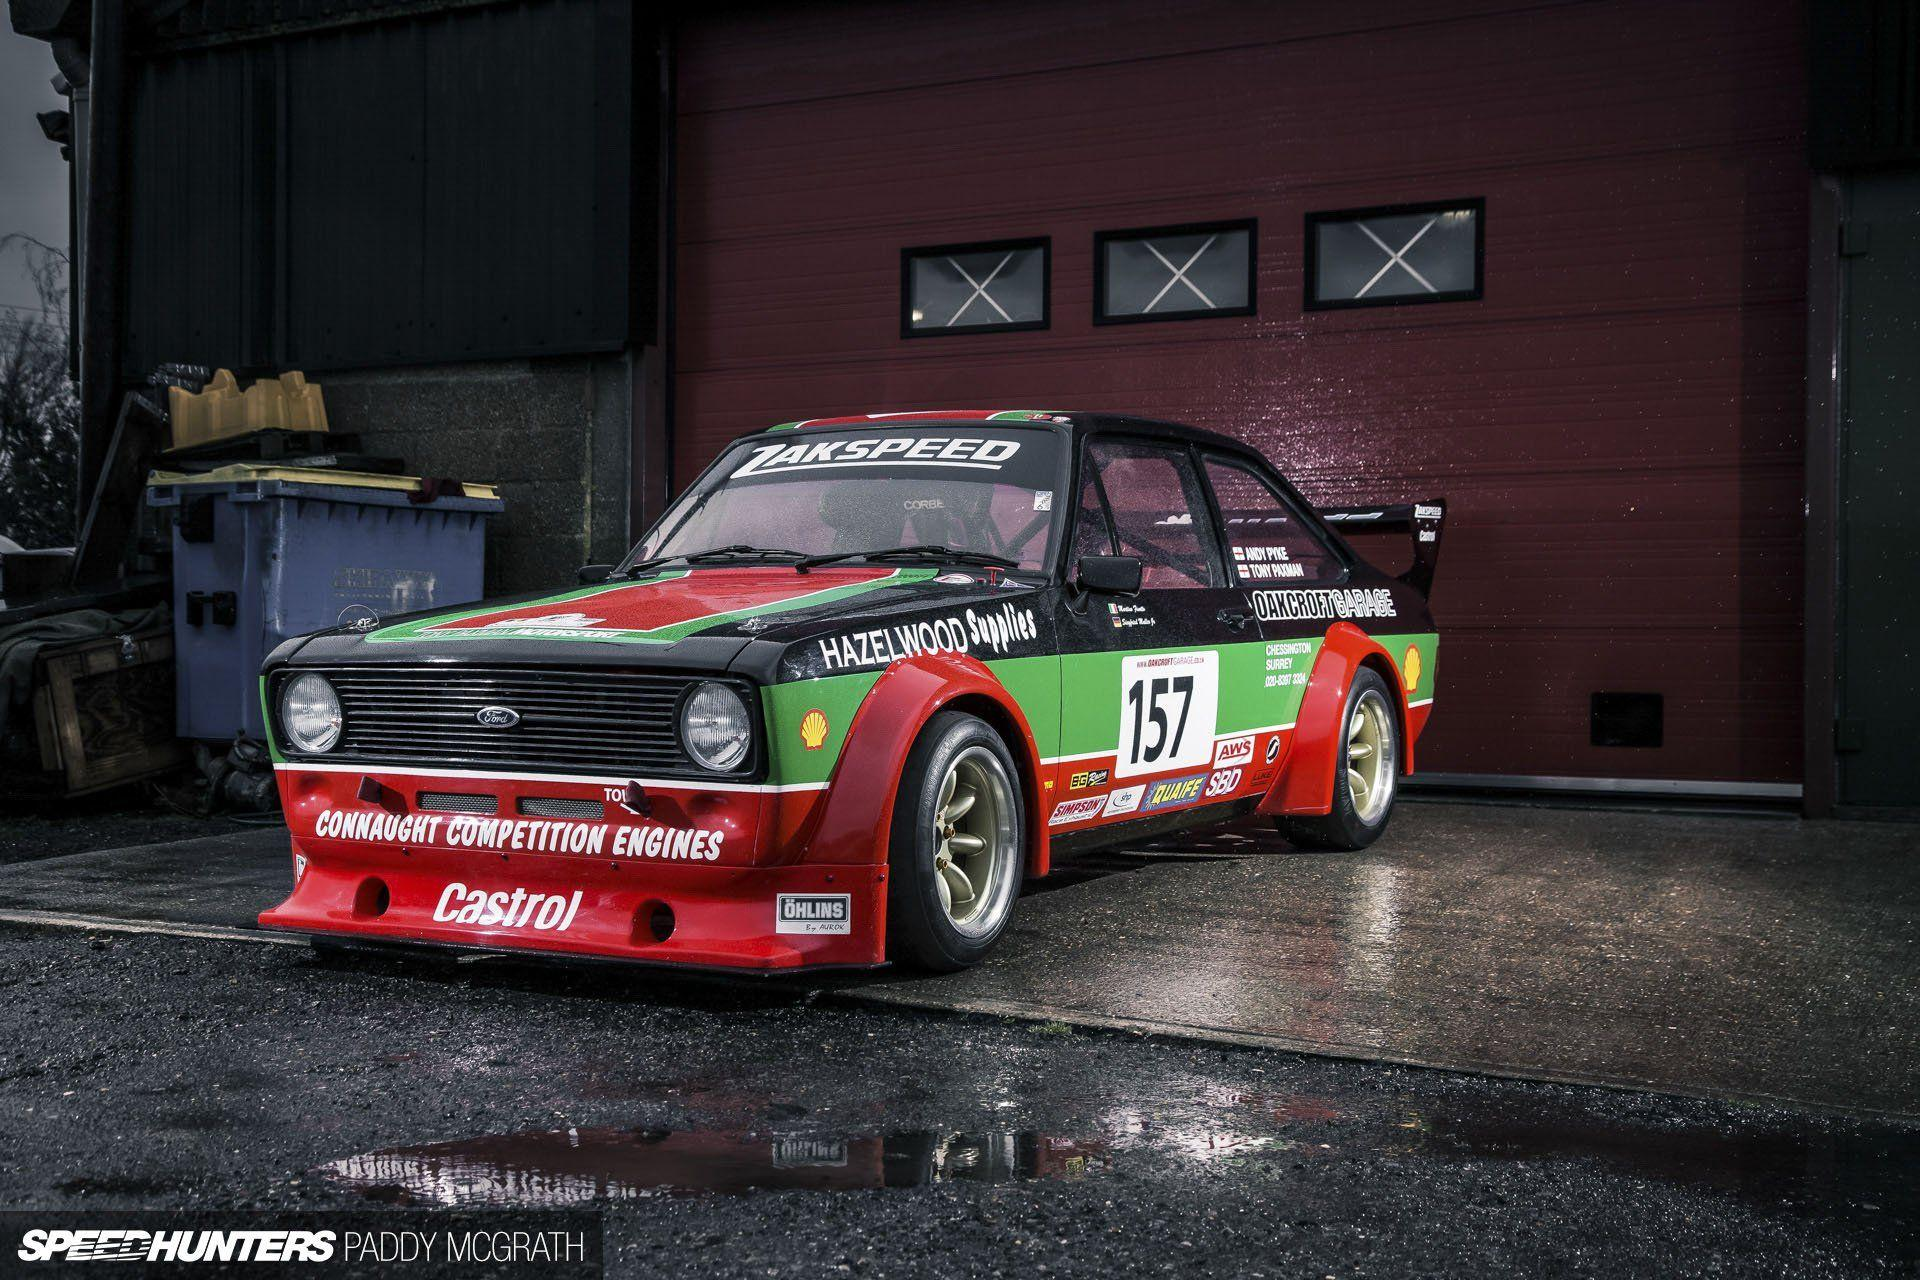 Ford Escort two